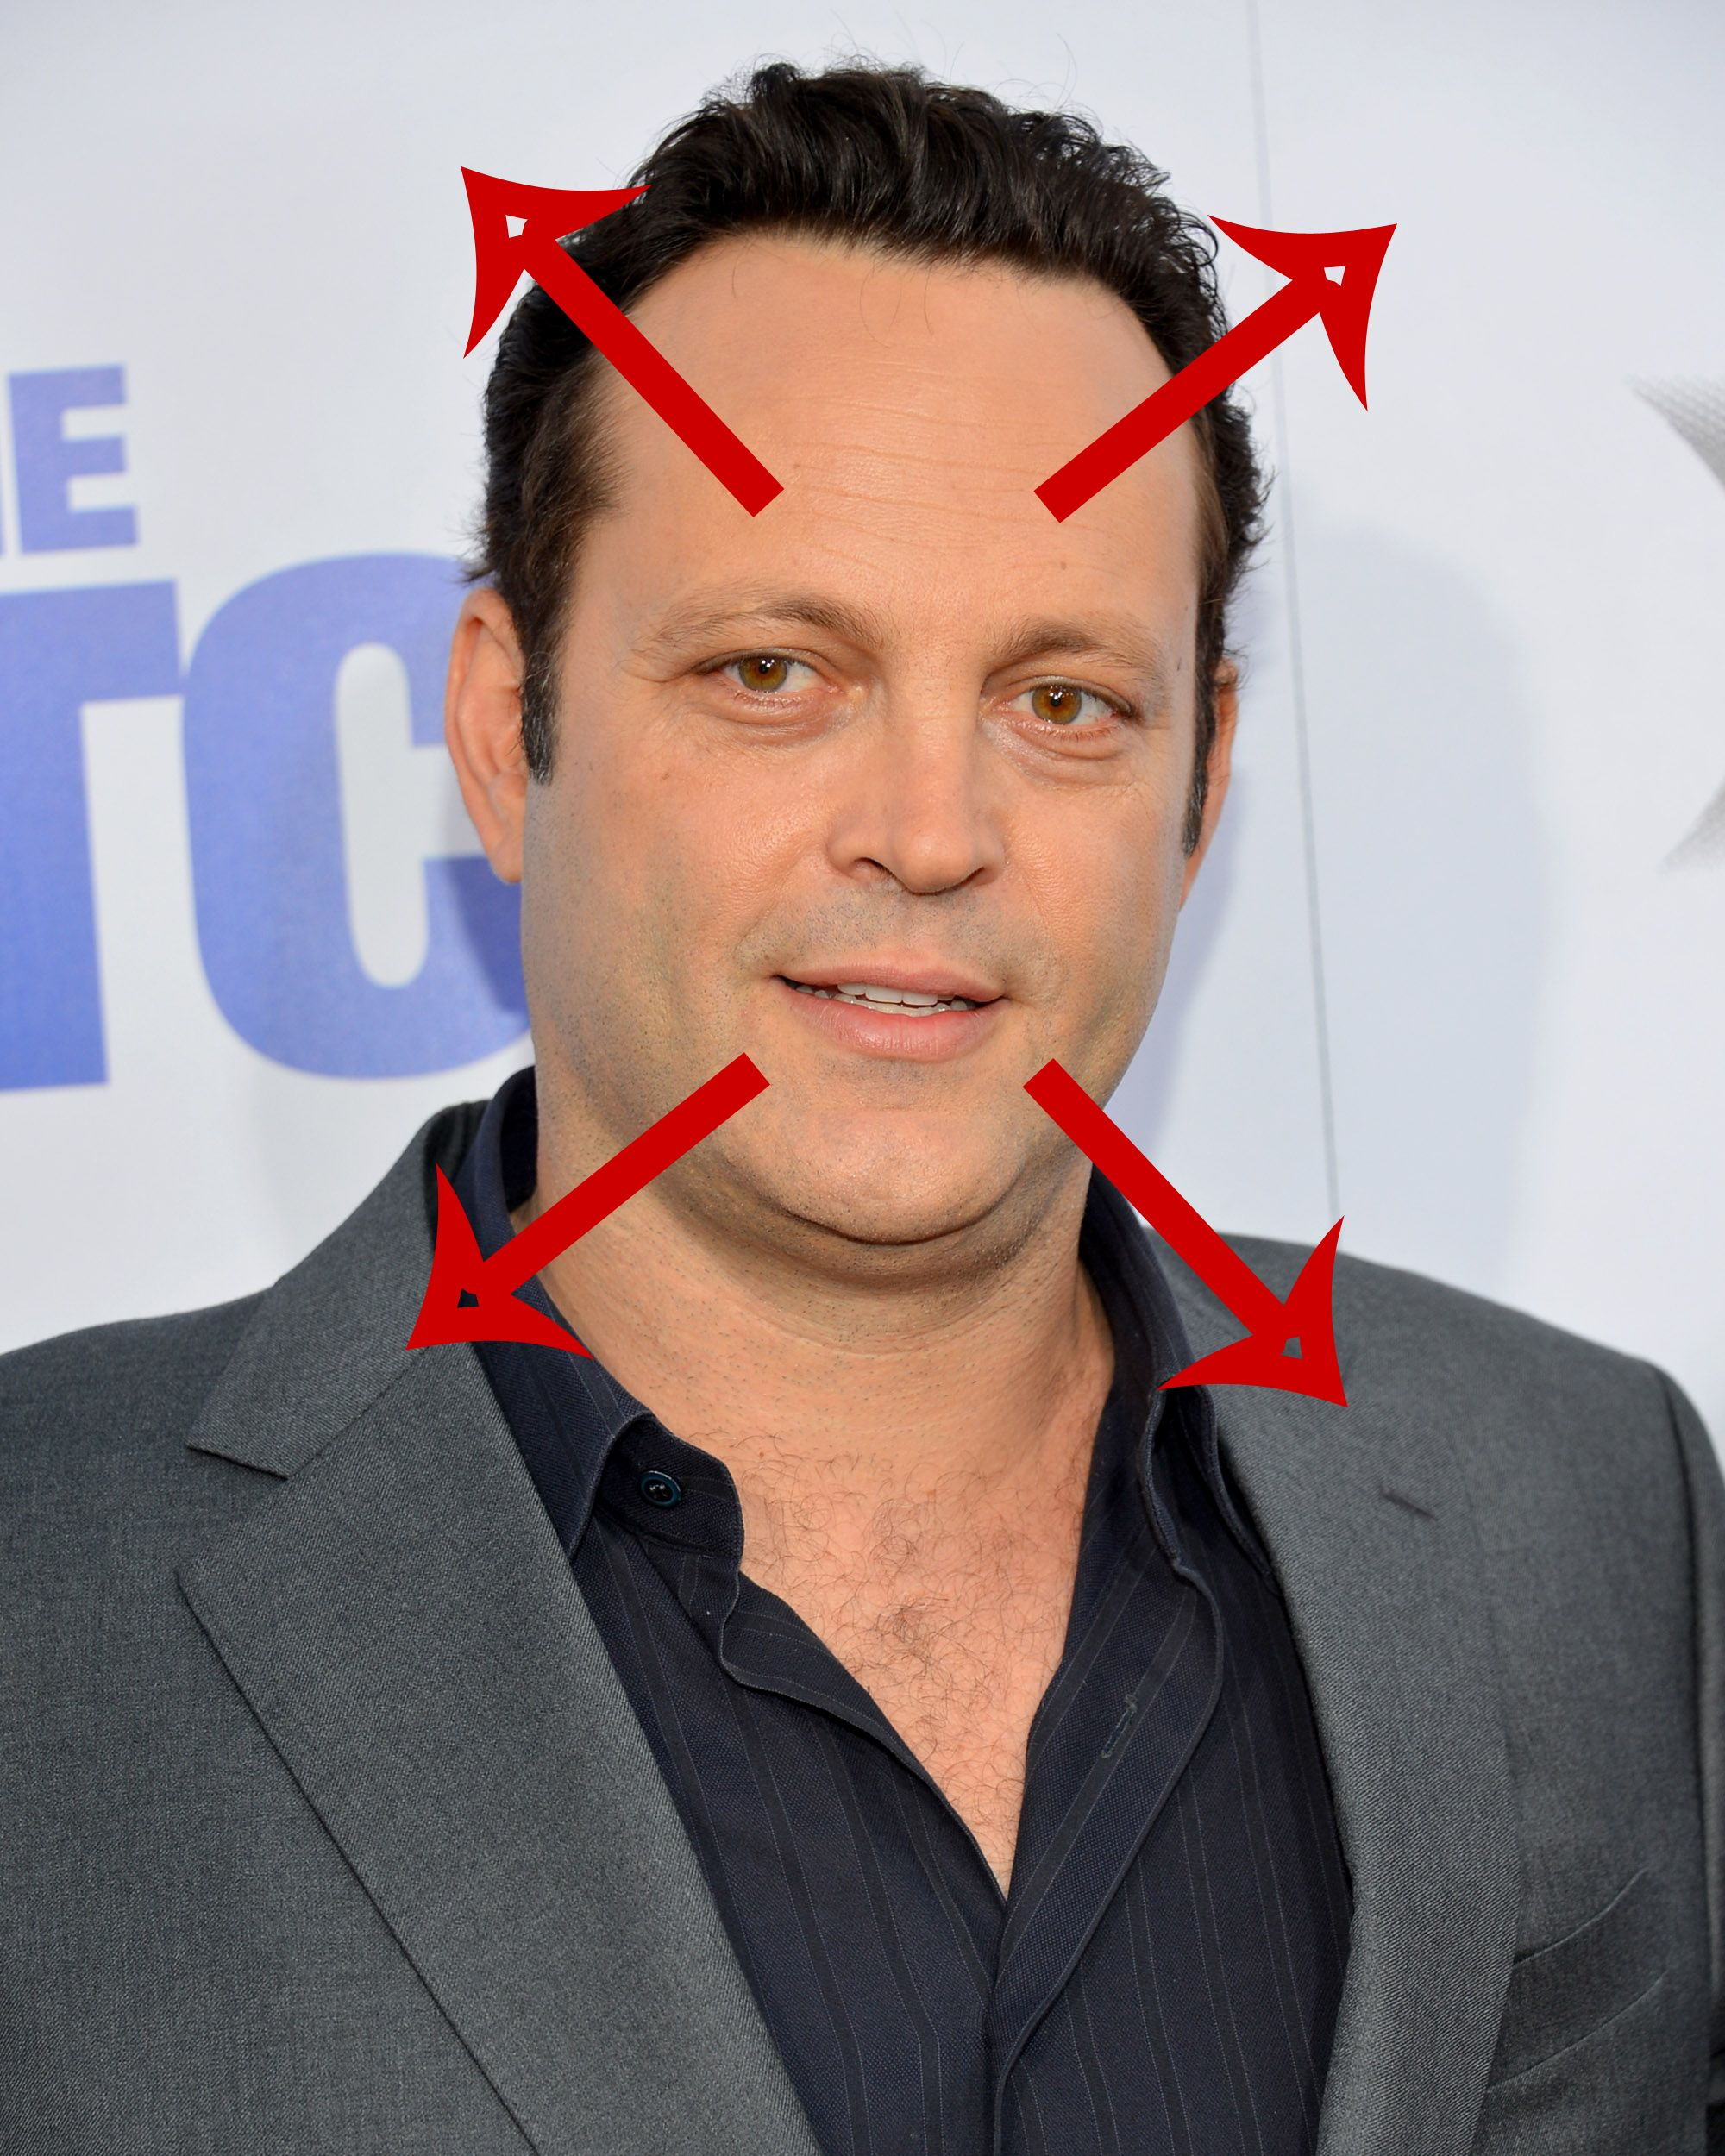 vince vaughn, vince vaughn big face, vince vaughn big head, big head actor, big face actor, big face man, big head man